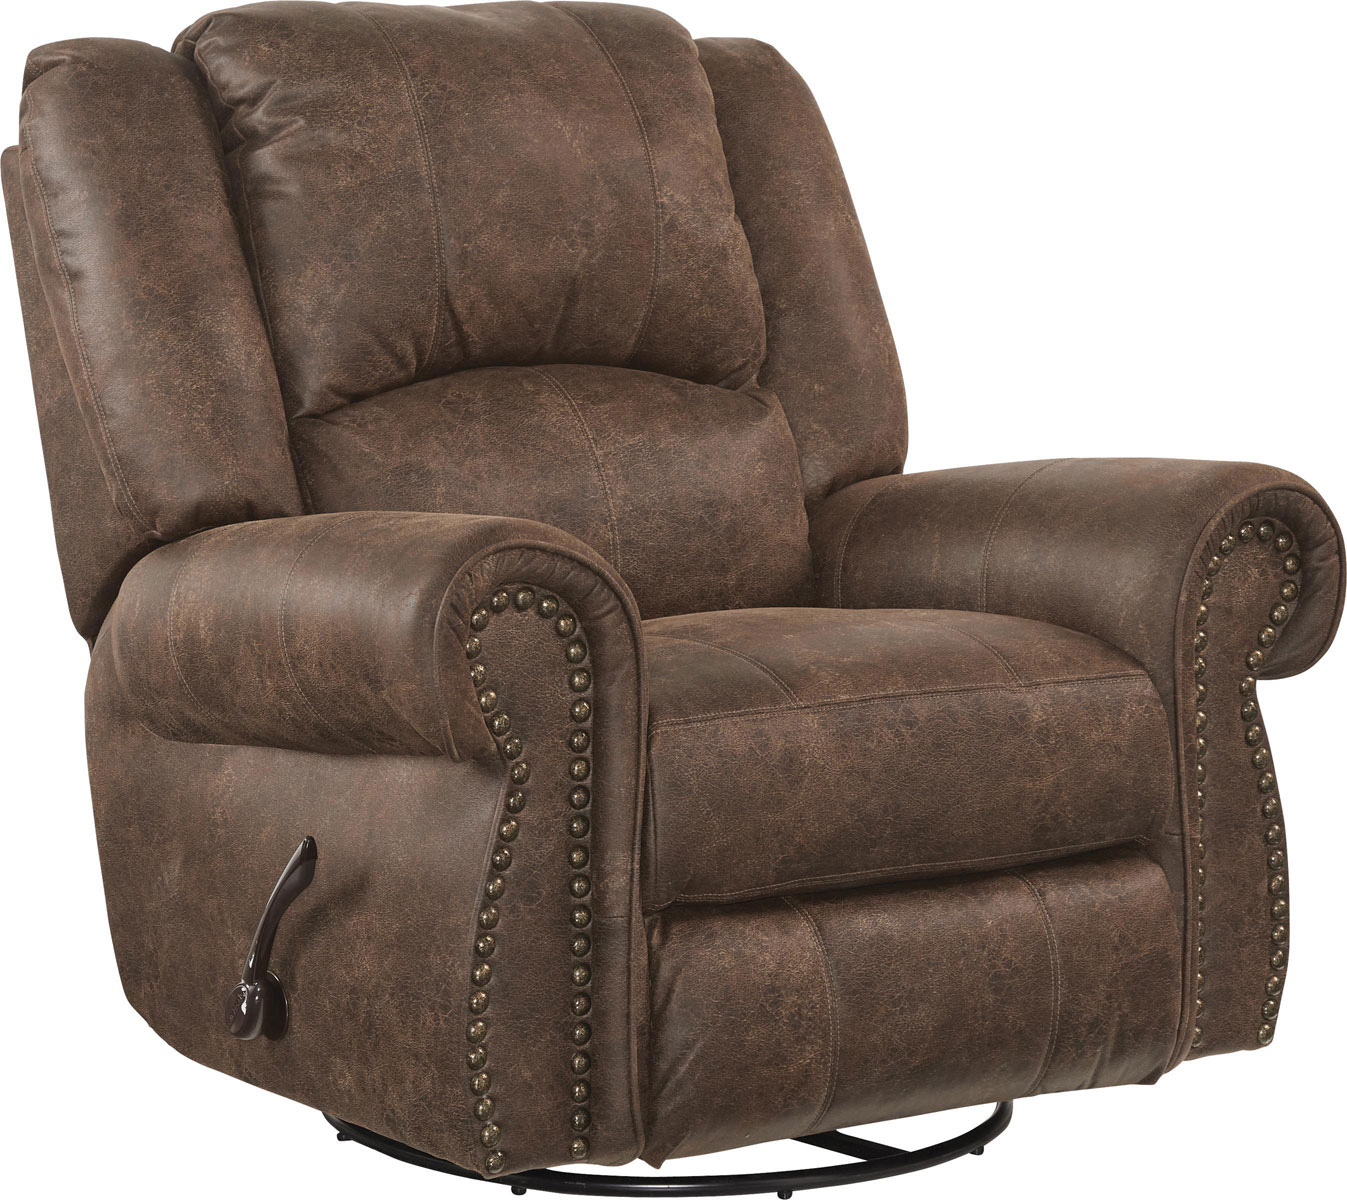 CatNapper Westin Power Glider Recliner - Tanner